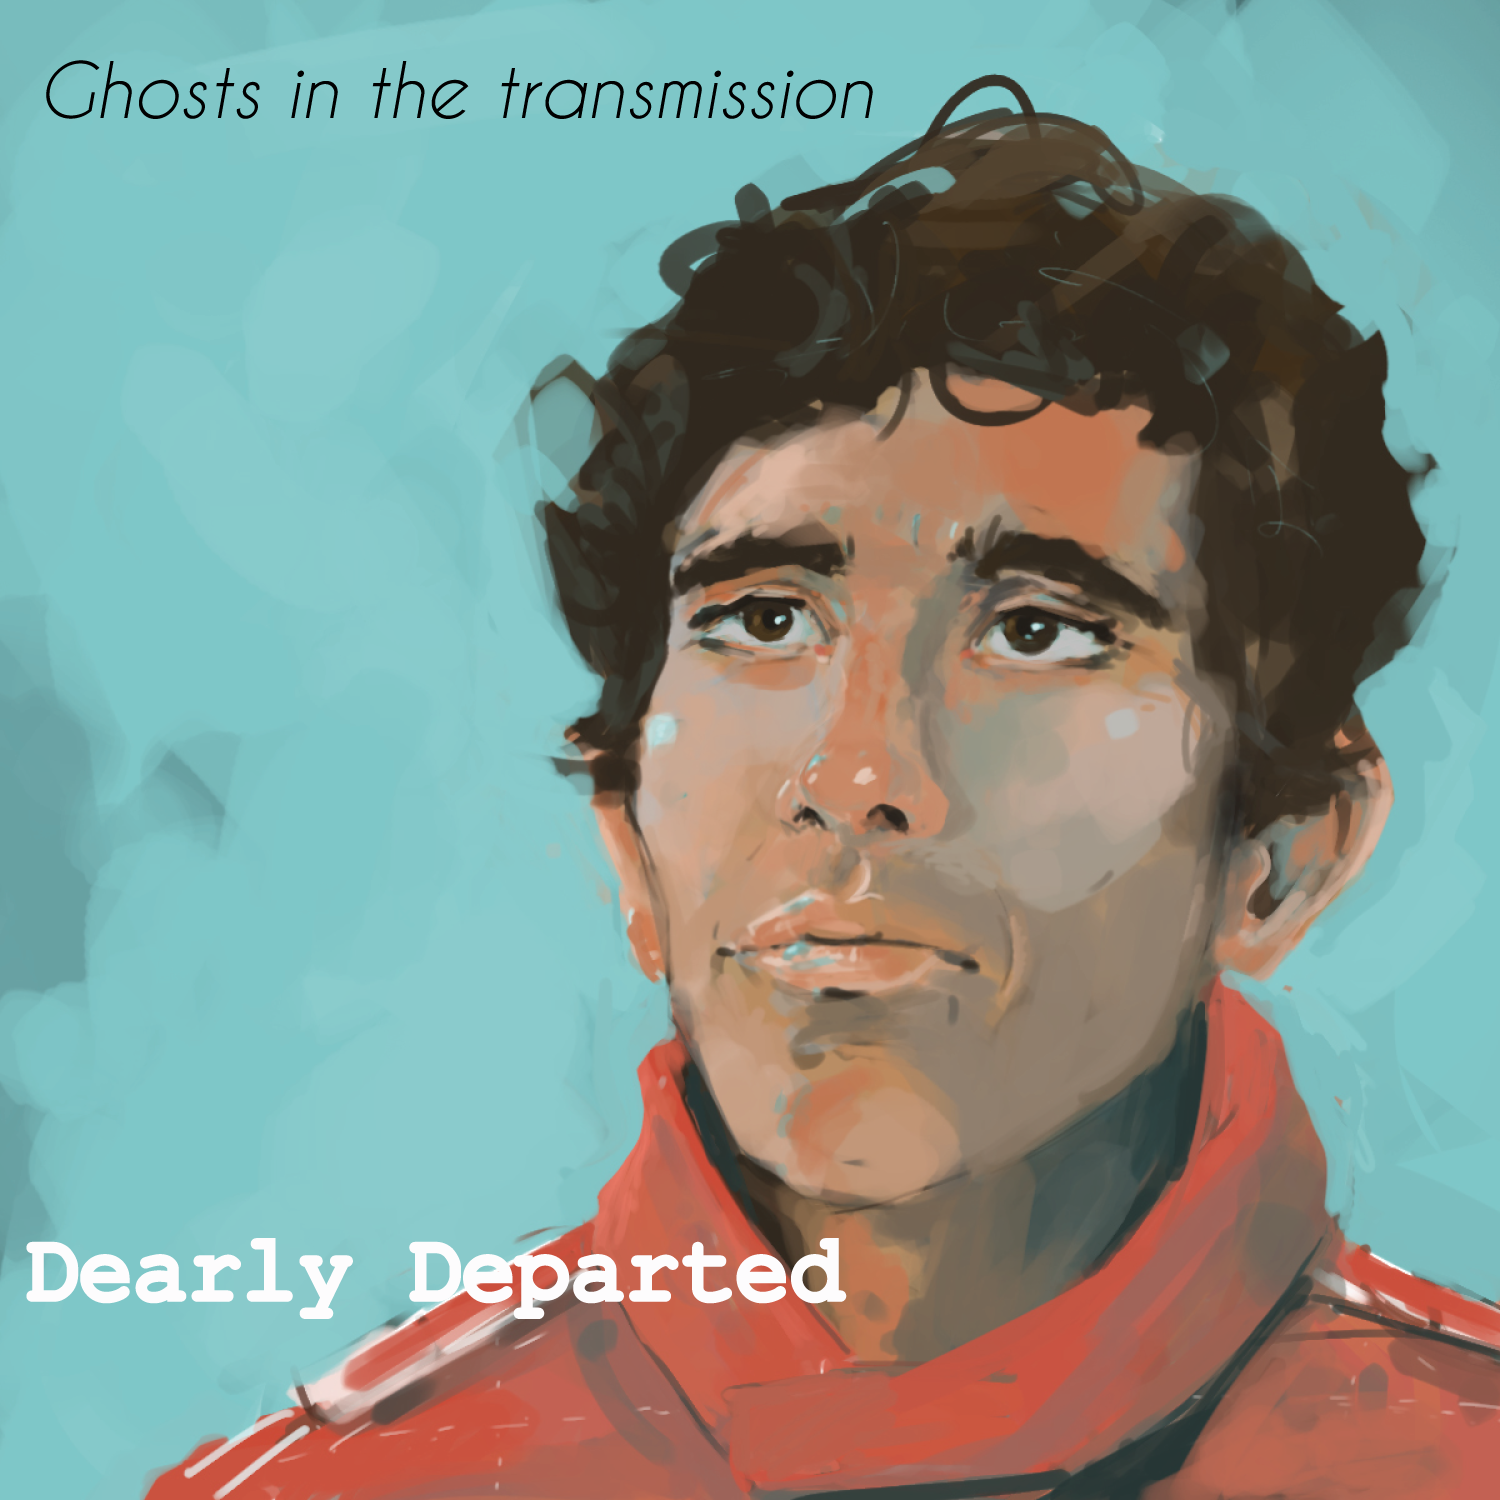 Ghosts in the transmission